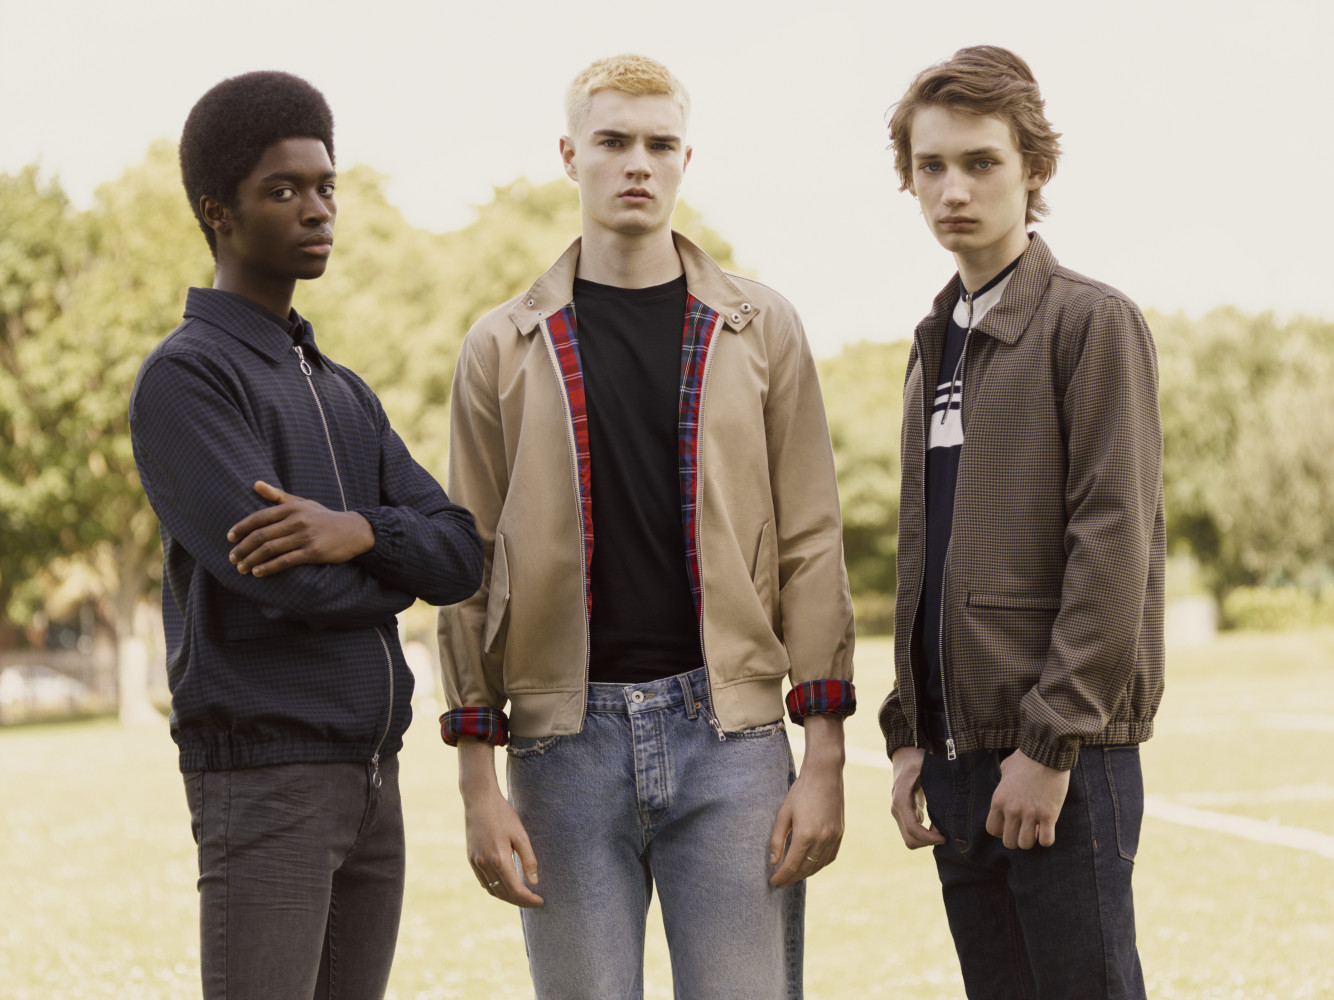 ALTON FOR TOPMAN CAMPAIGN